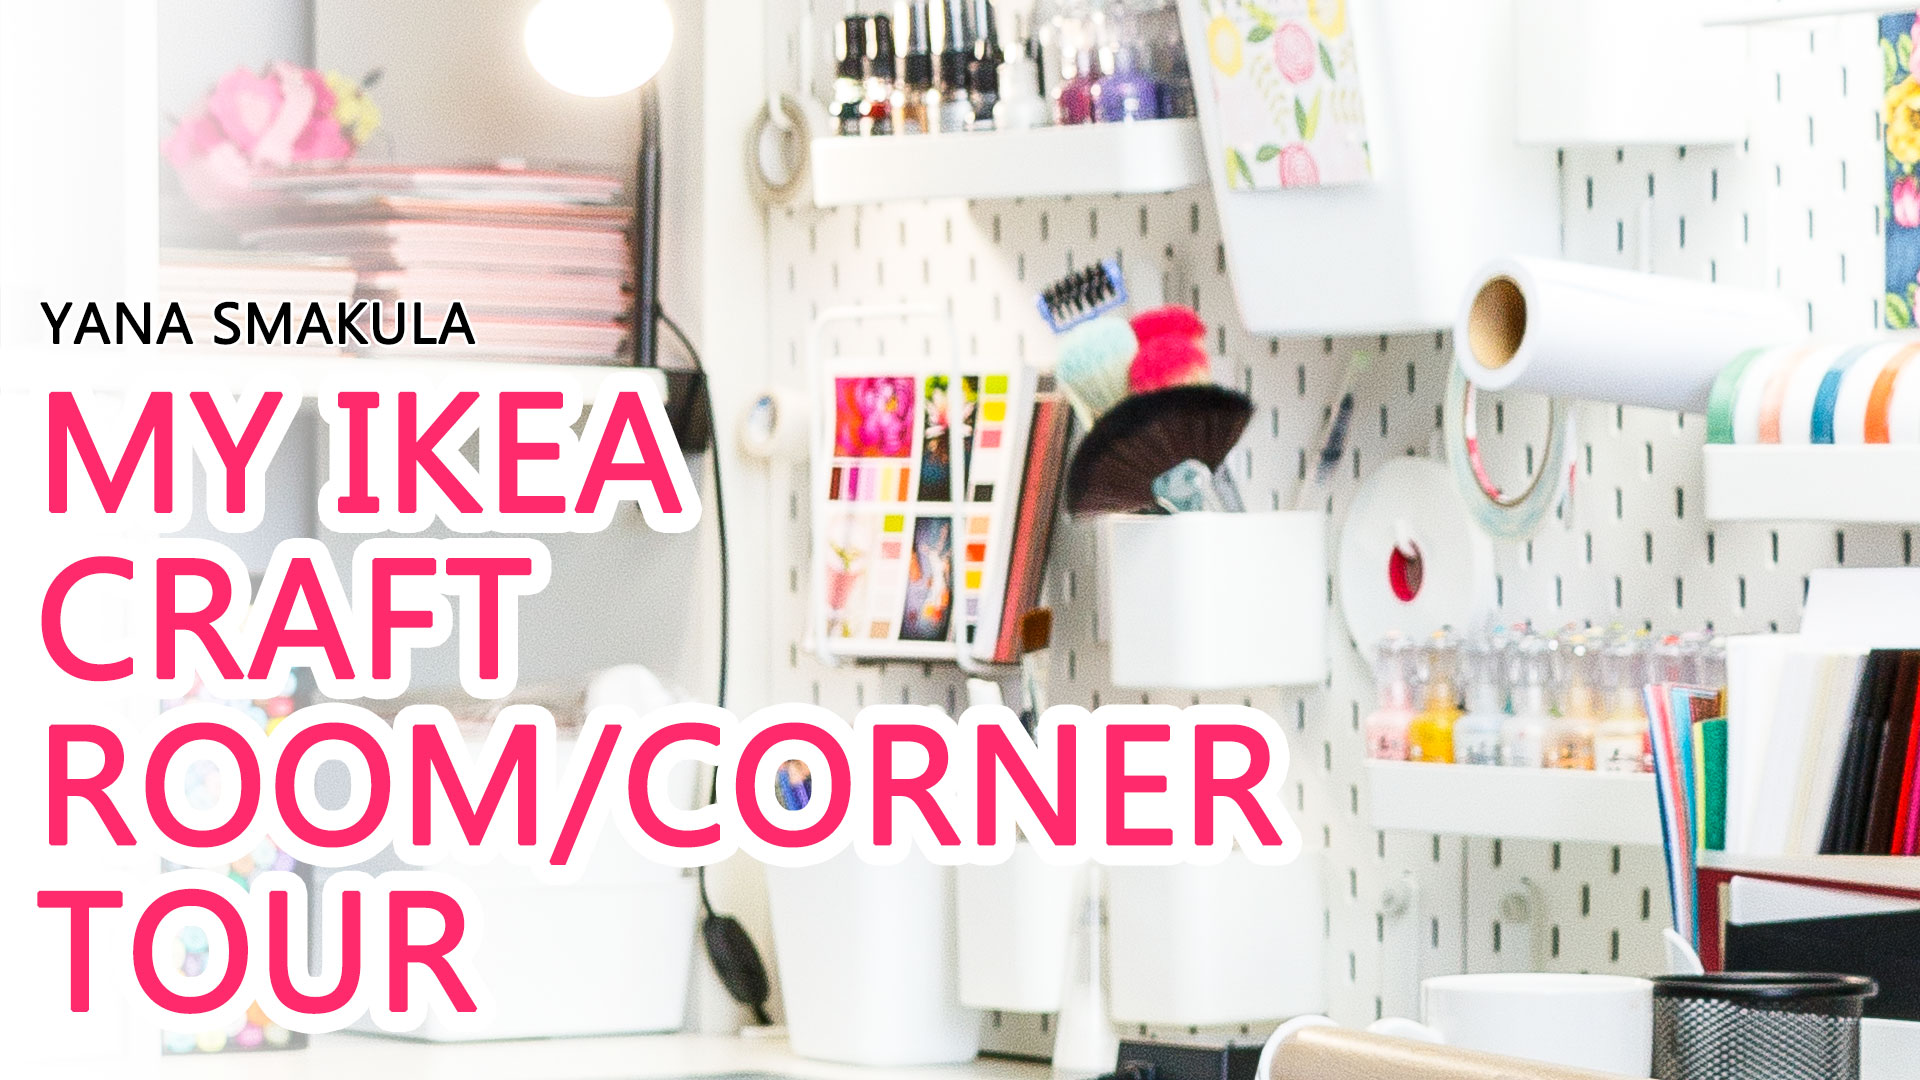 Ikea Expedit Youtube My Ikea Craft Room Craft Corner Tour 2018 Yana Smakula